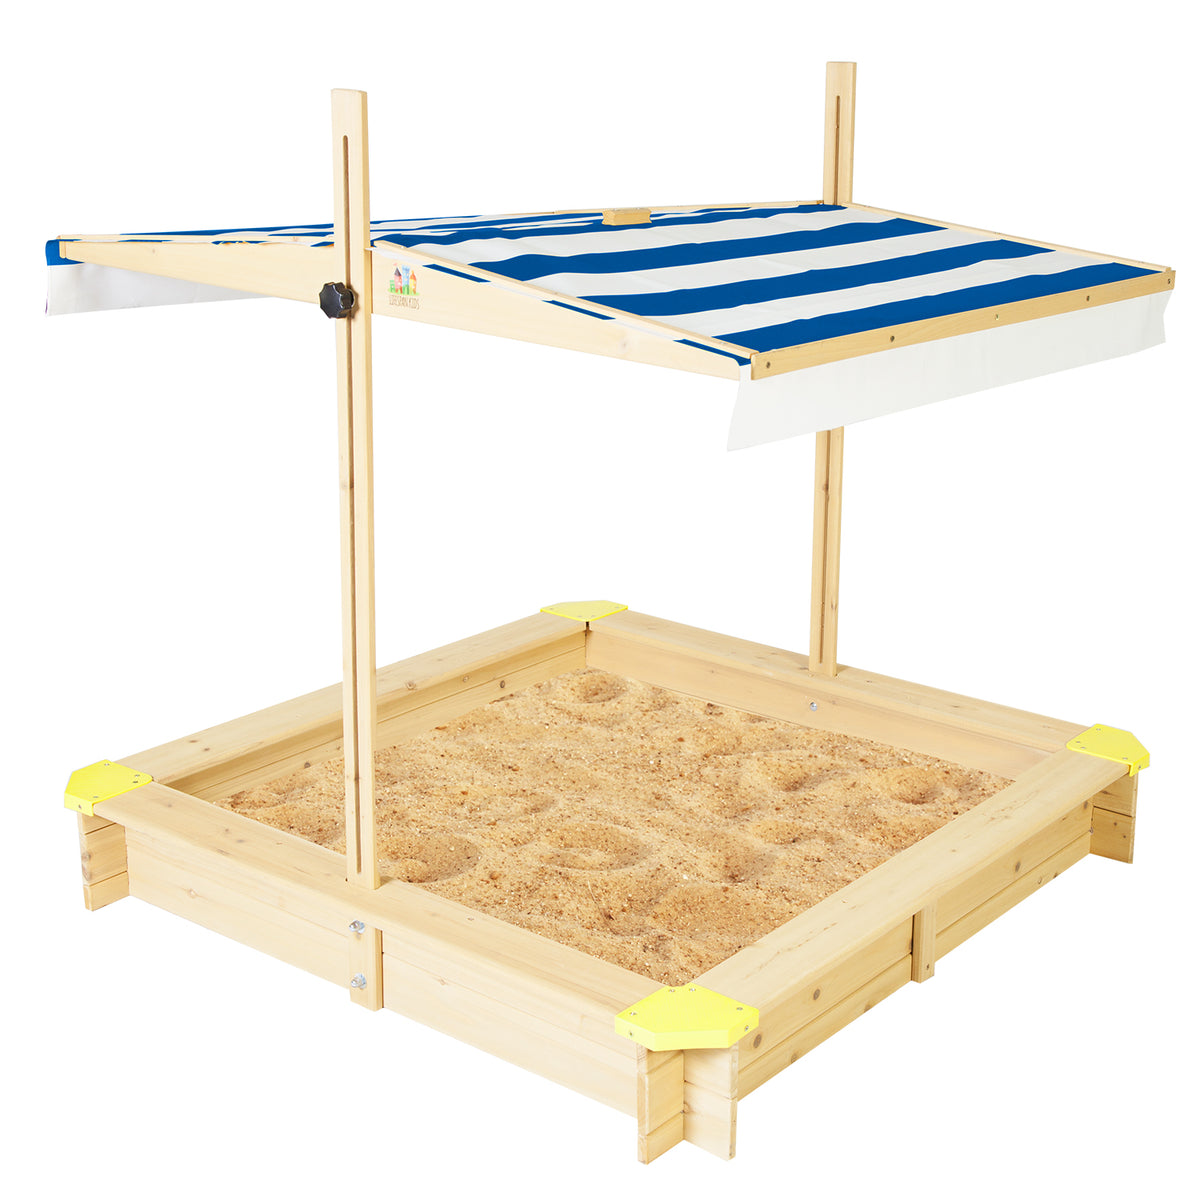 Lifespan Kids Joey 2 Sandpit with Canopy